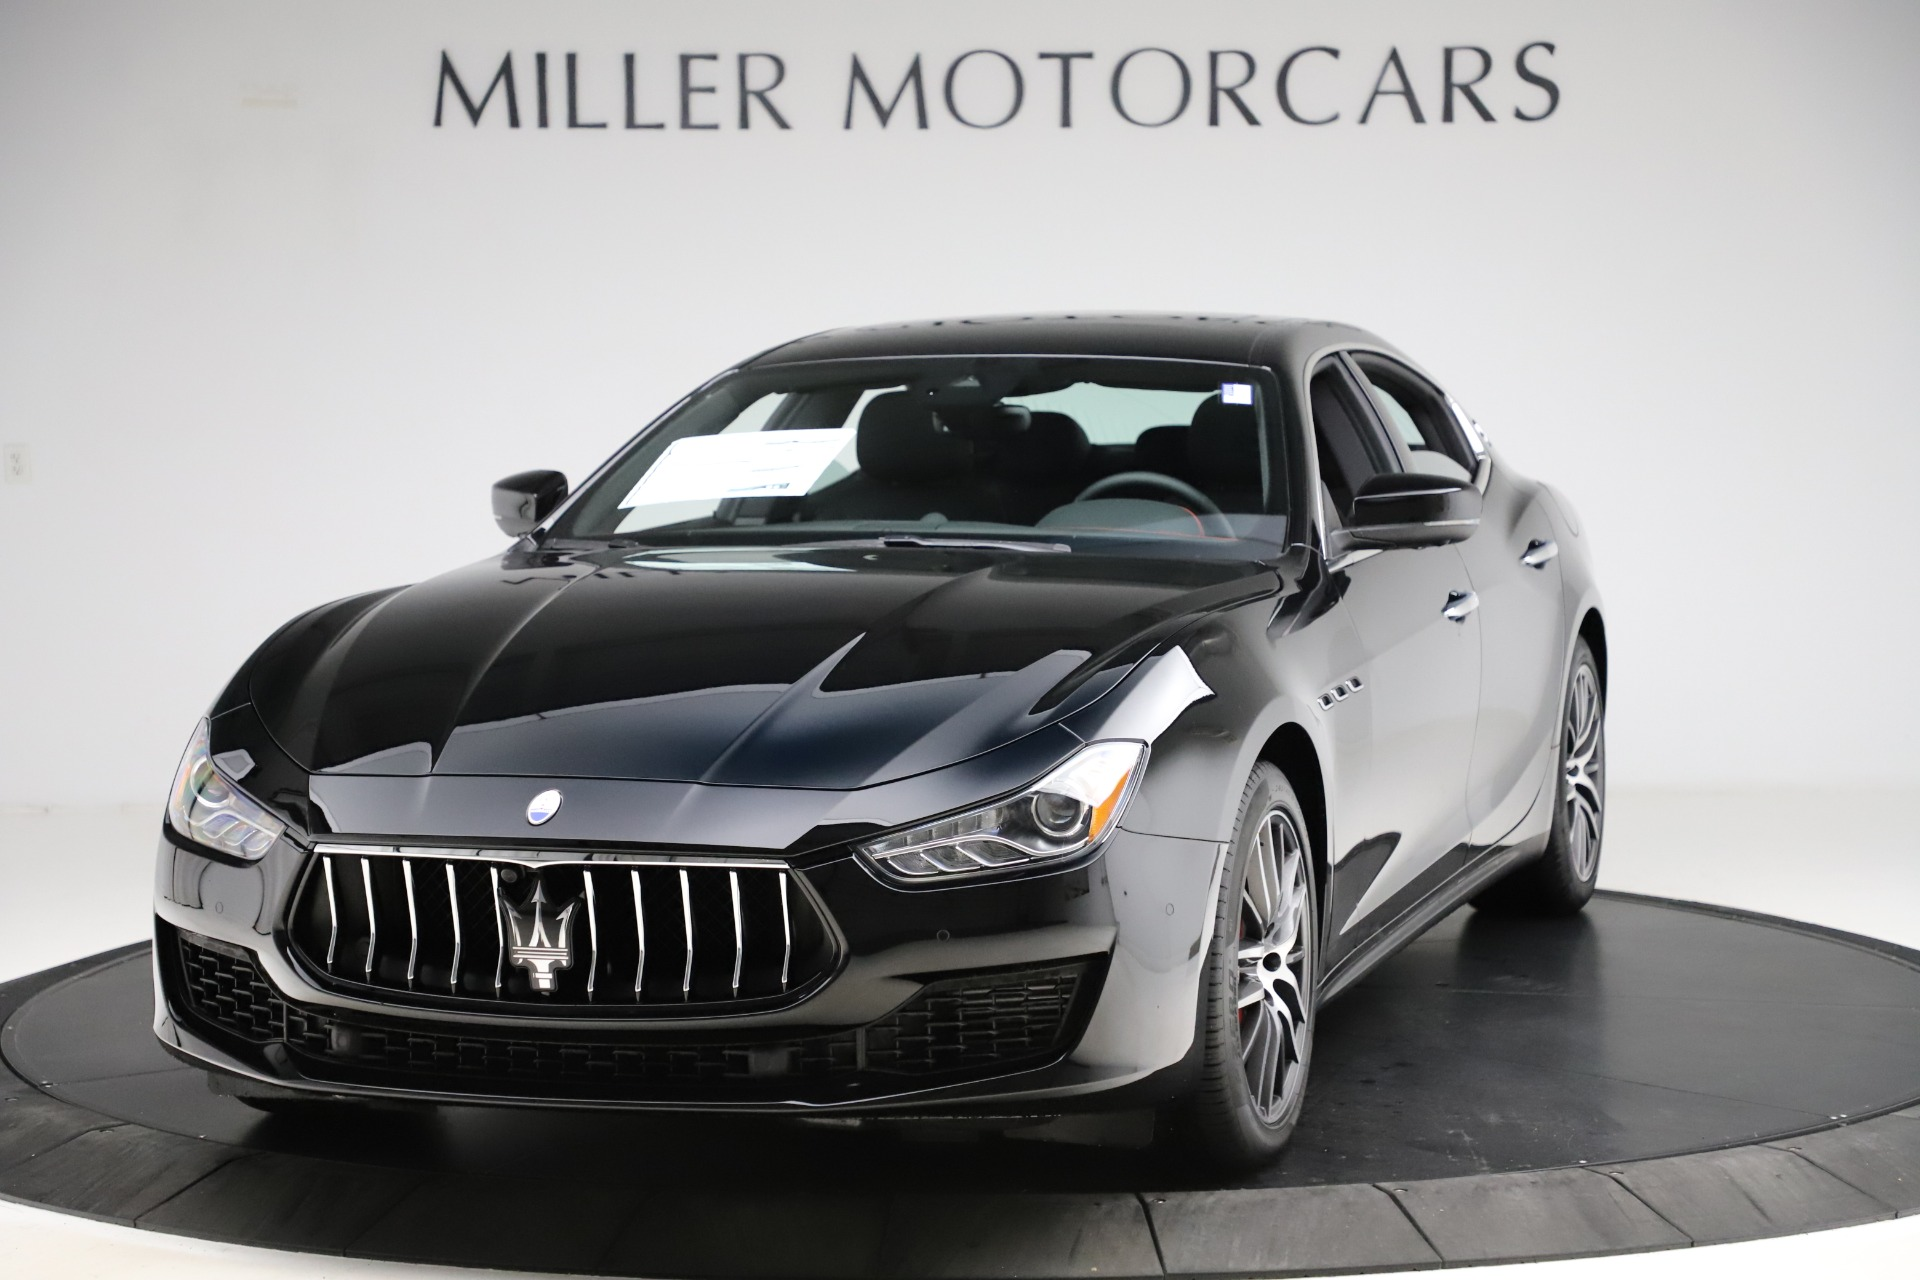 New 2020 Maserati Ghibli S Q4 for sale $84,104 at McLaren Greenwich in Greenwich CT 06830 1